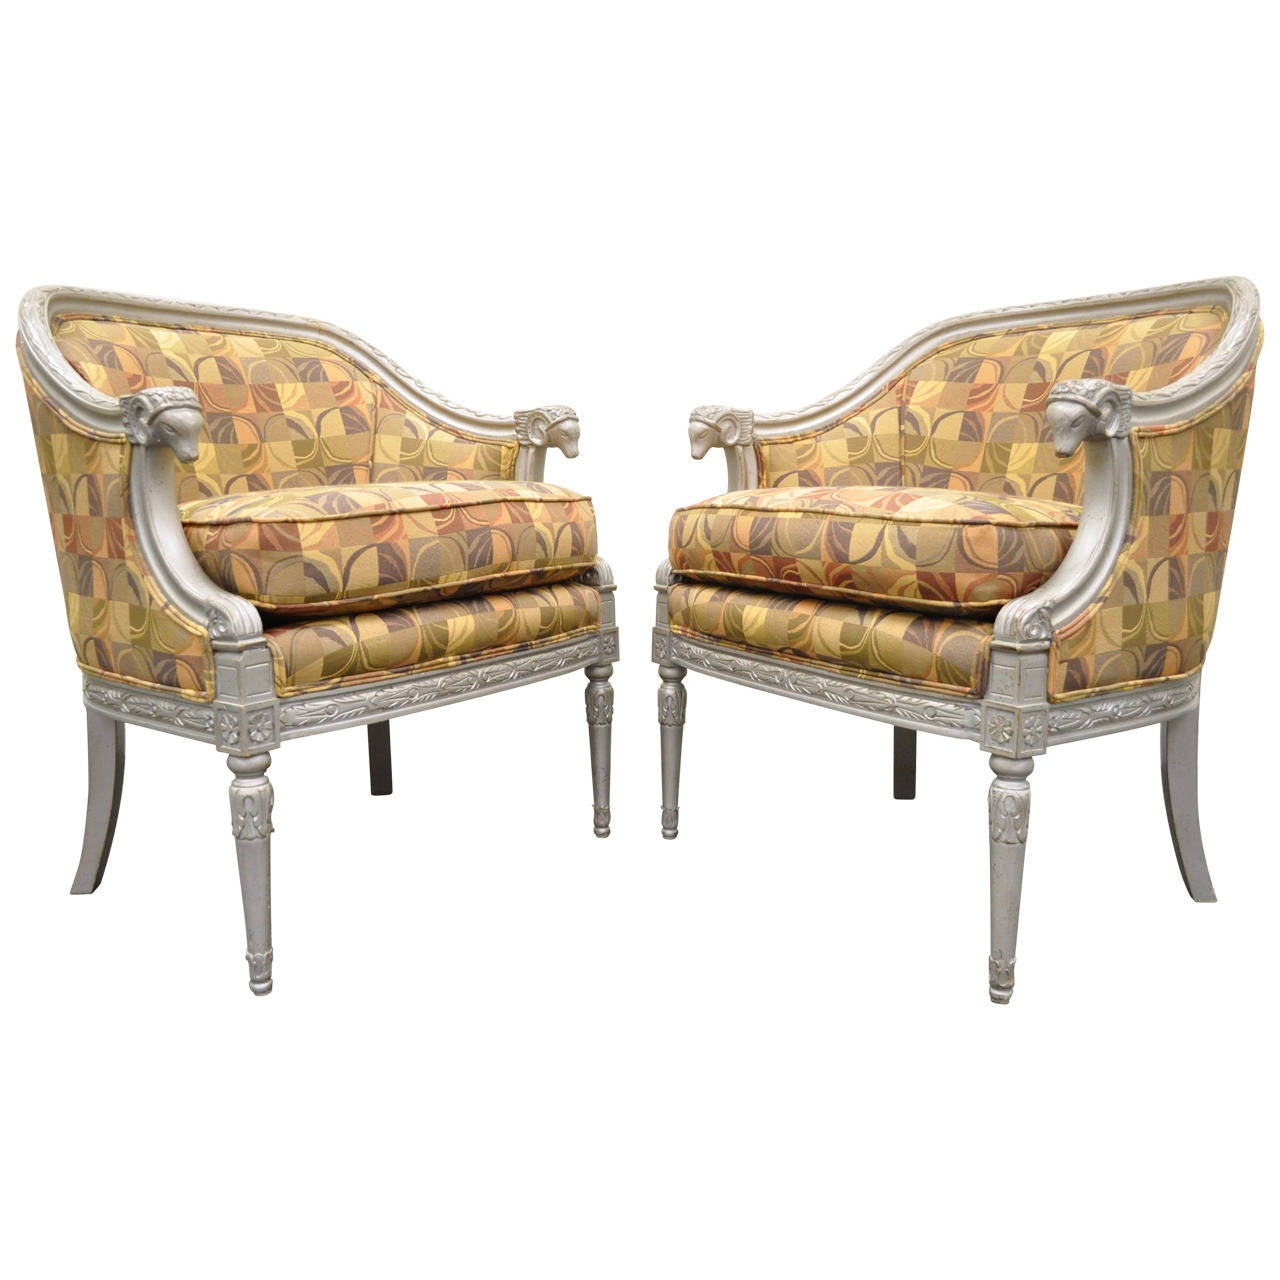 Antique barrel chair - Pair Of Stunning Hollywood Regency Silver Rams Head Barrel Back Club Chairs 1